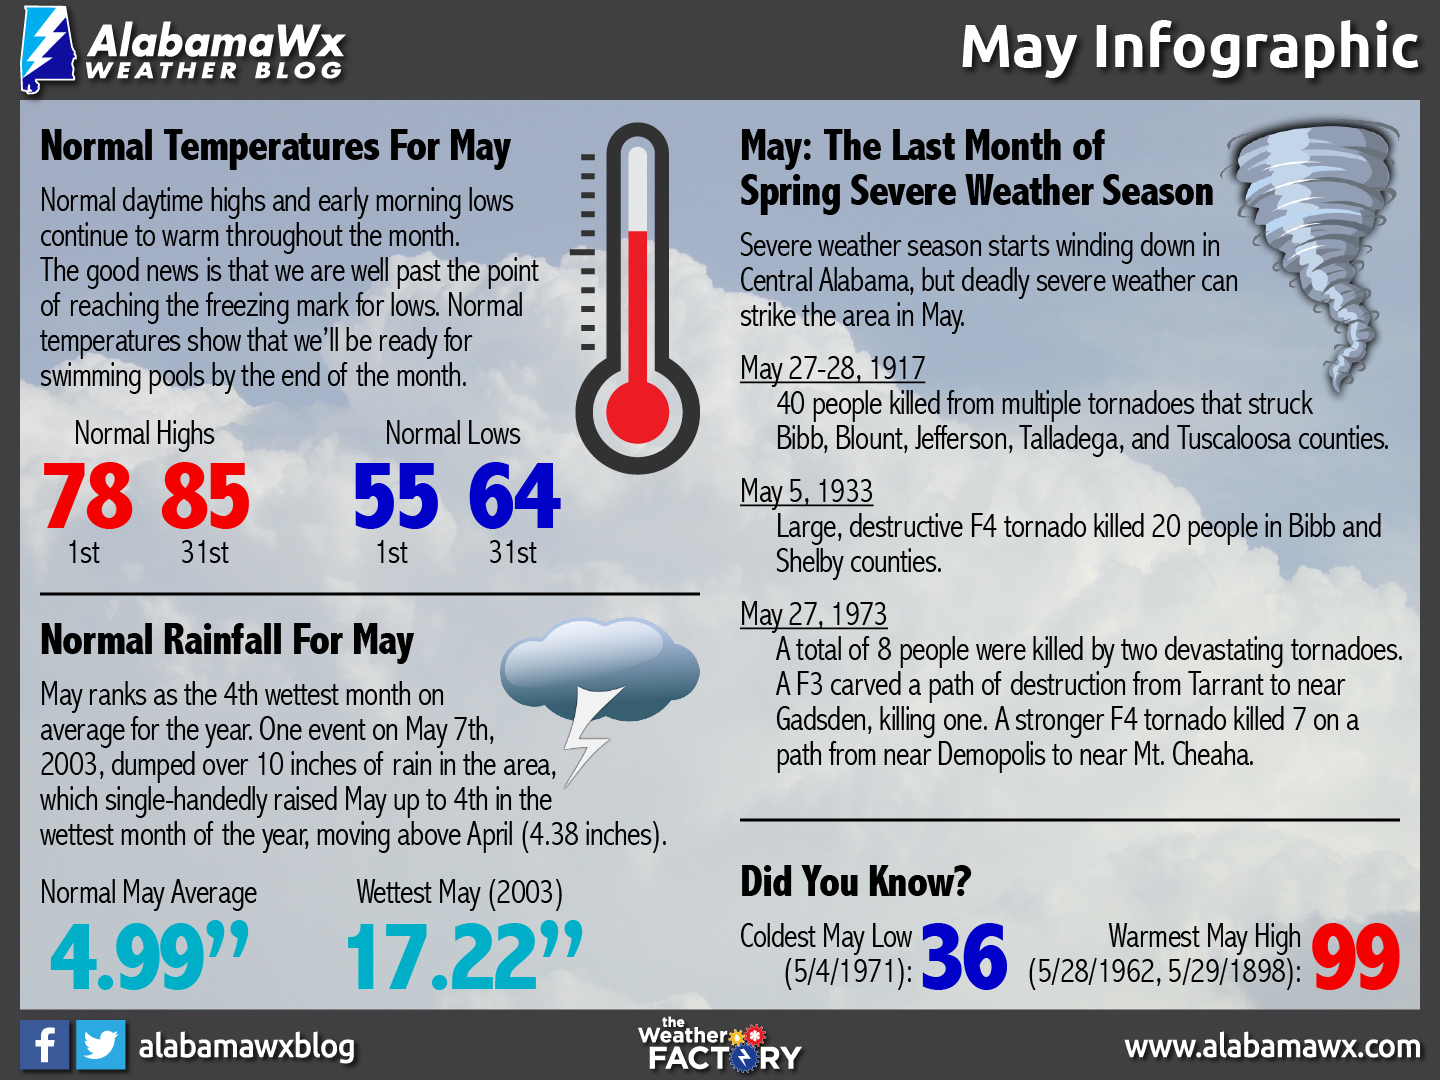 May Infographic by AlabamaWx's Scott Martin